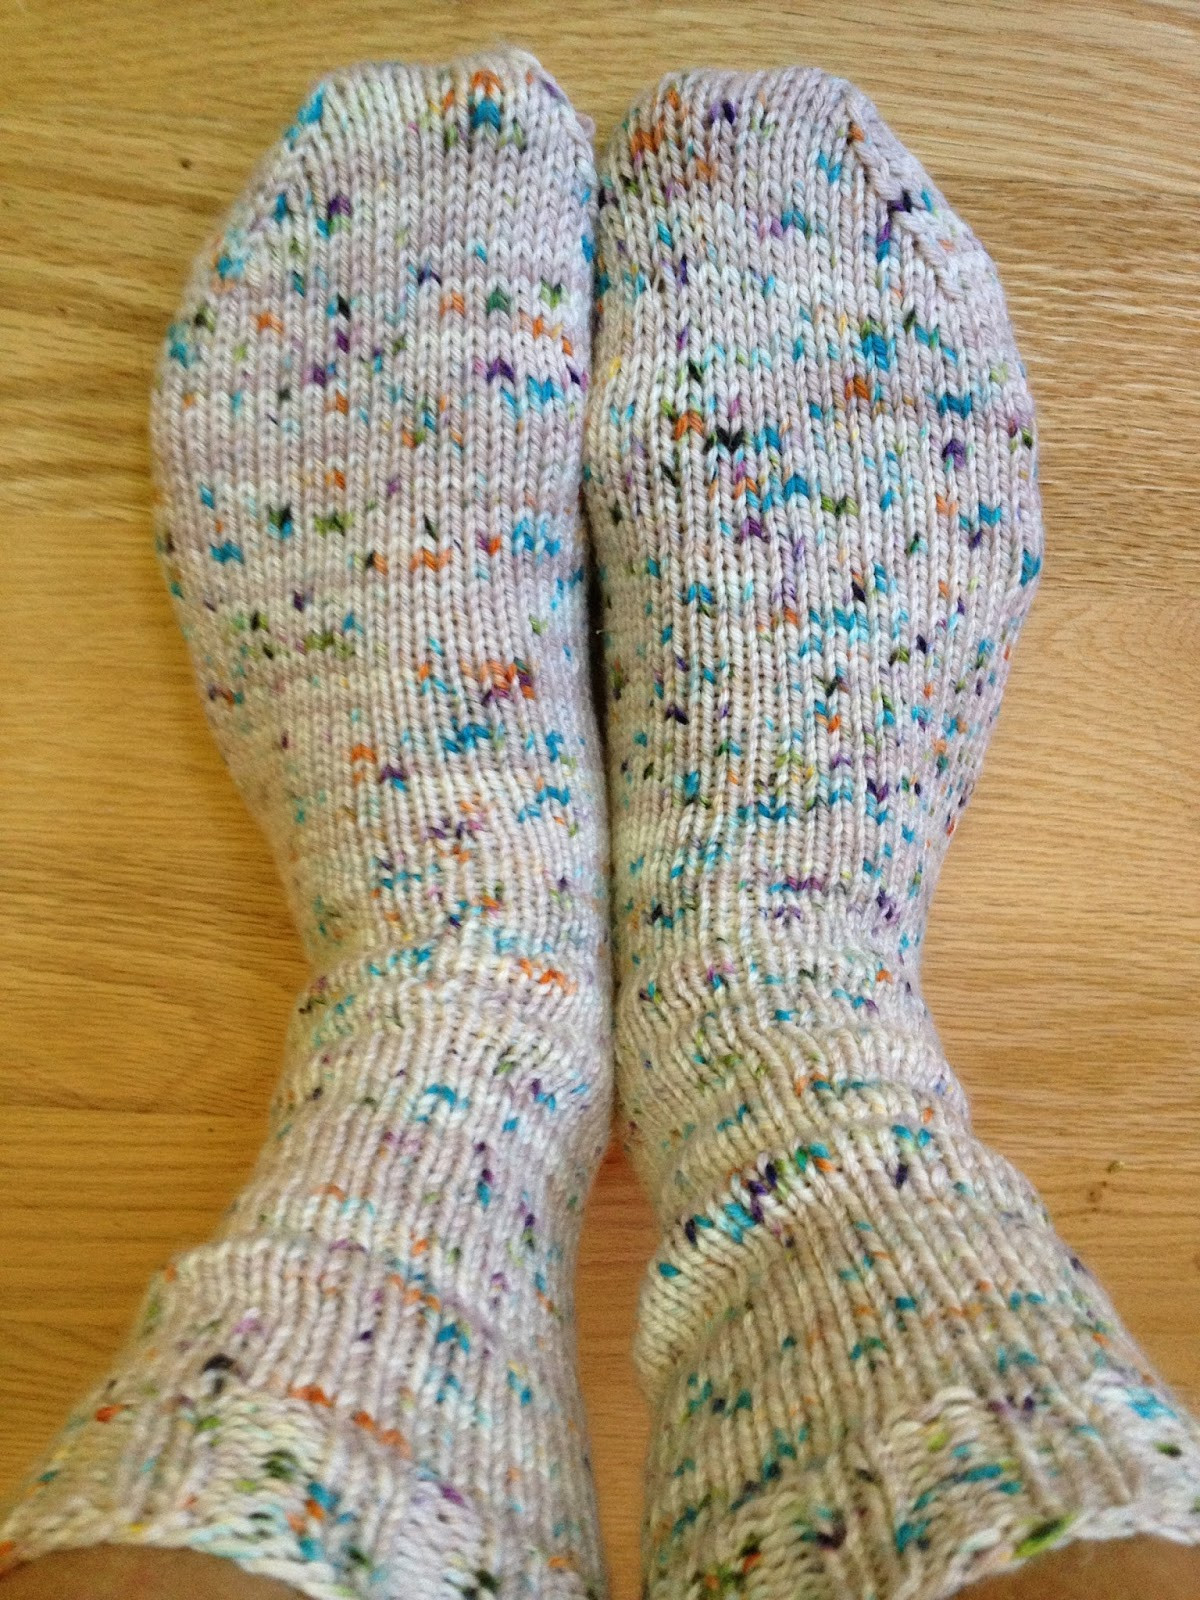 Sock Knitting Pattern Unique Susan B anderson How I Make Worsted Weight socks Of Unique 41 Photos sock Knitting Pattern